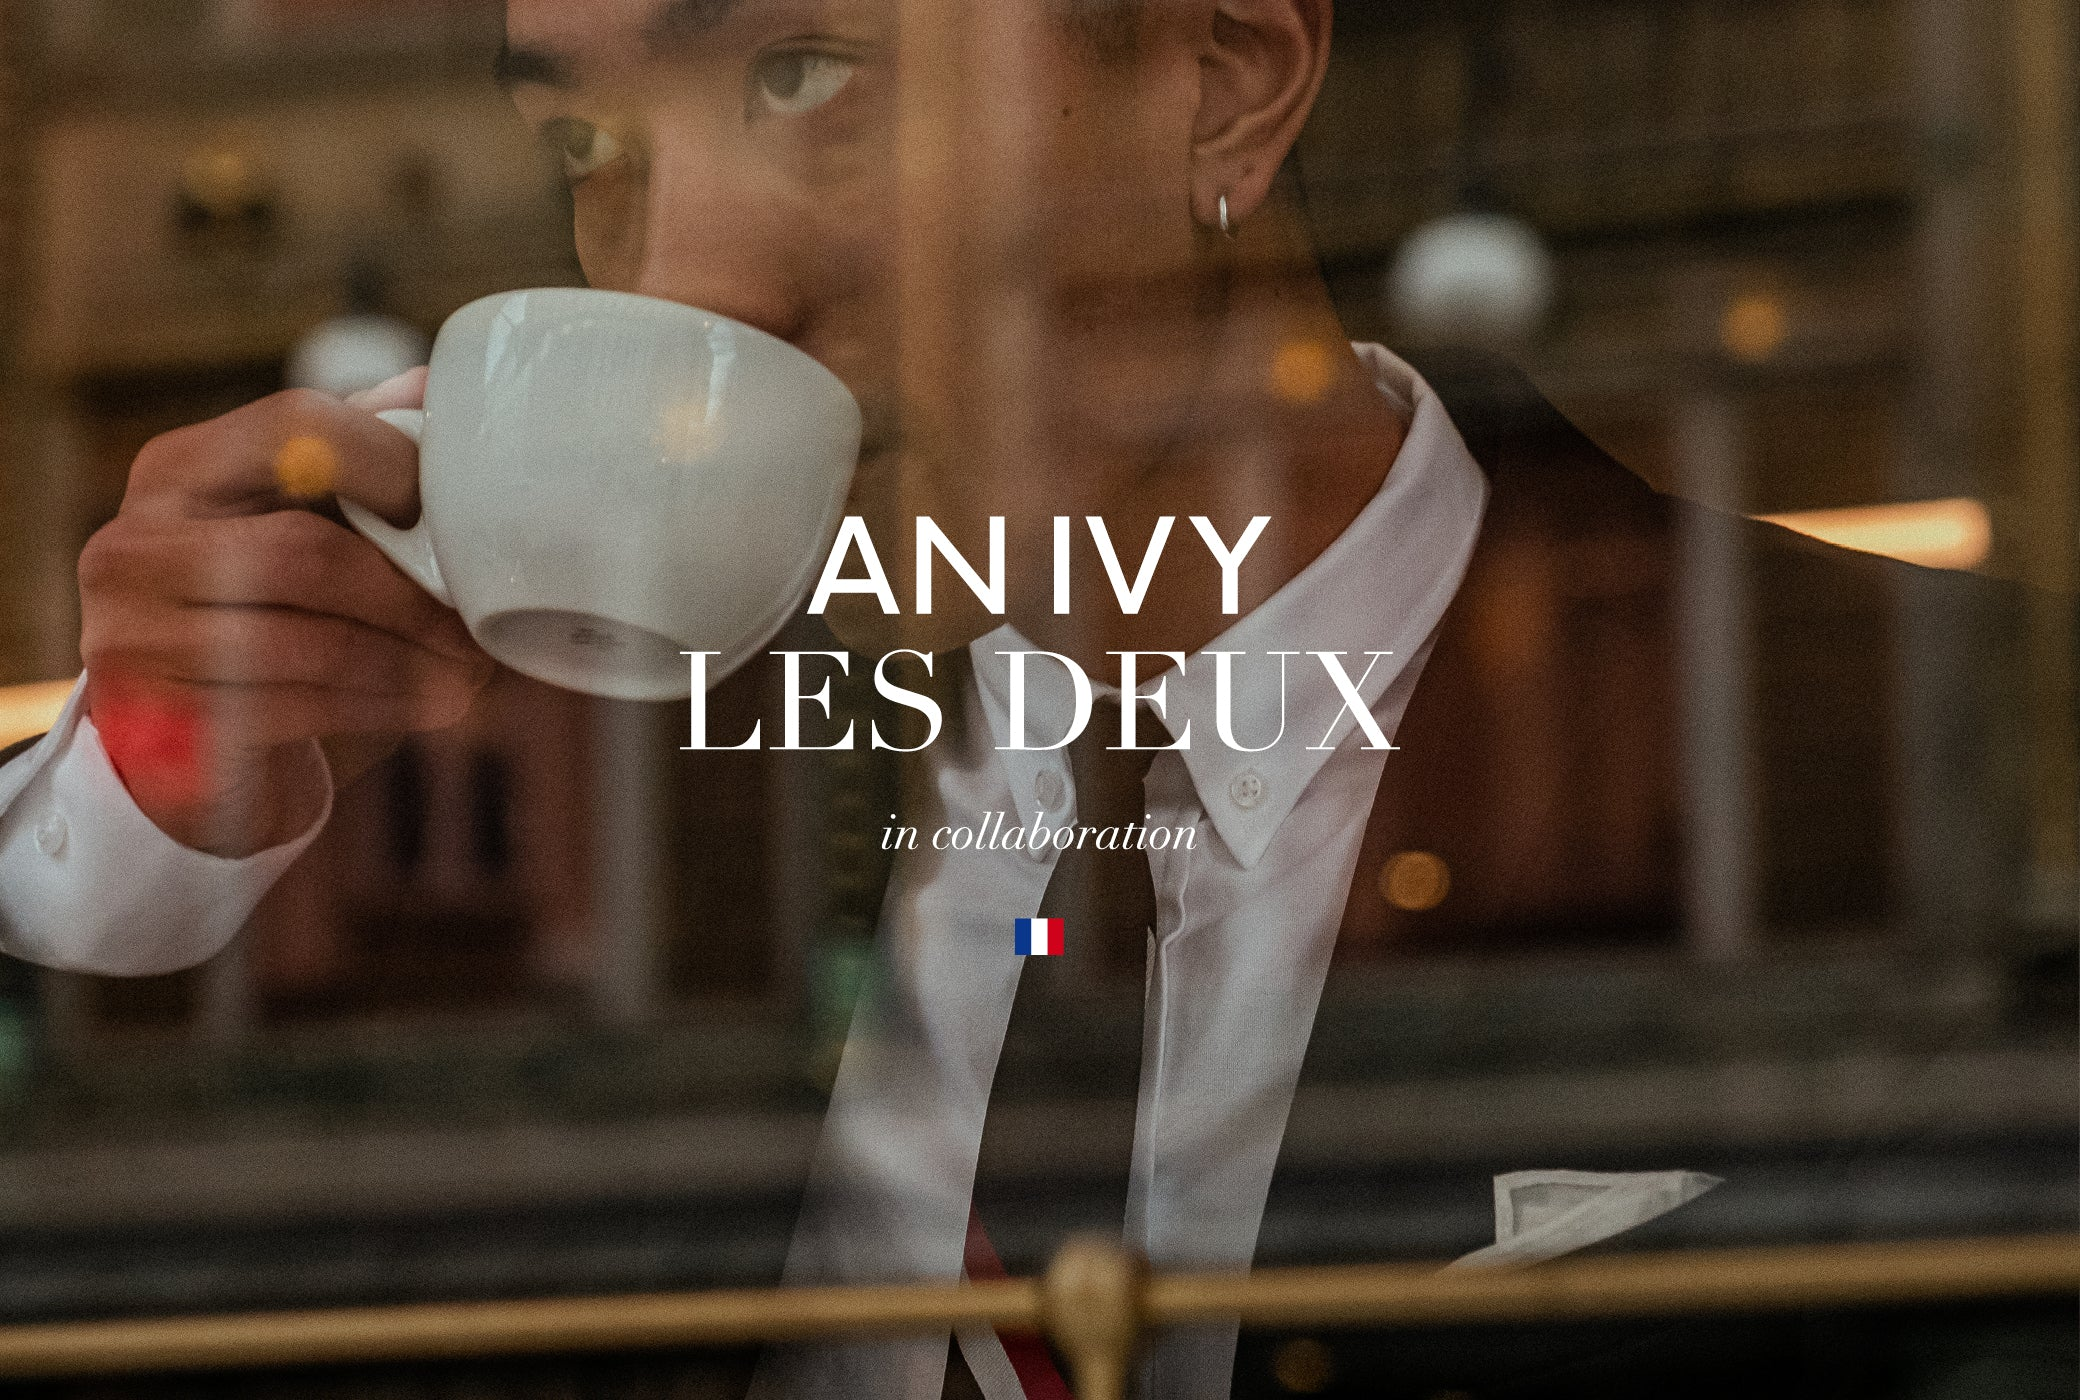 Les Deux x An Ivy - In Collaboration